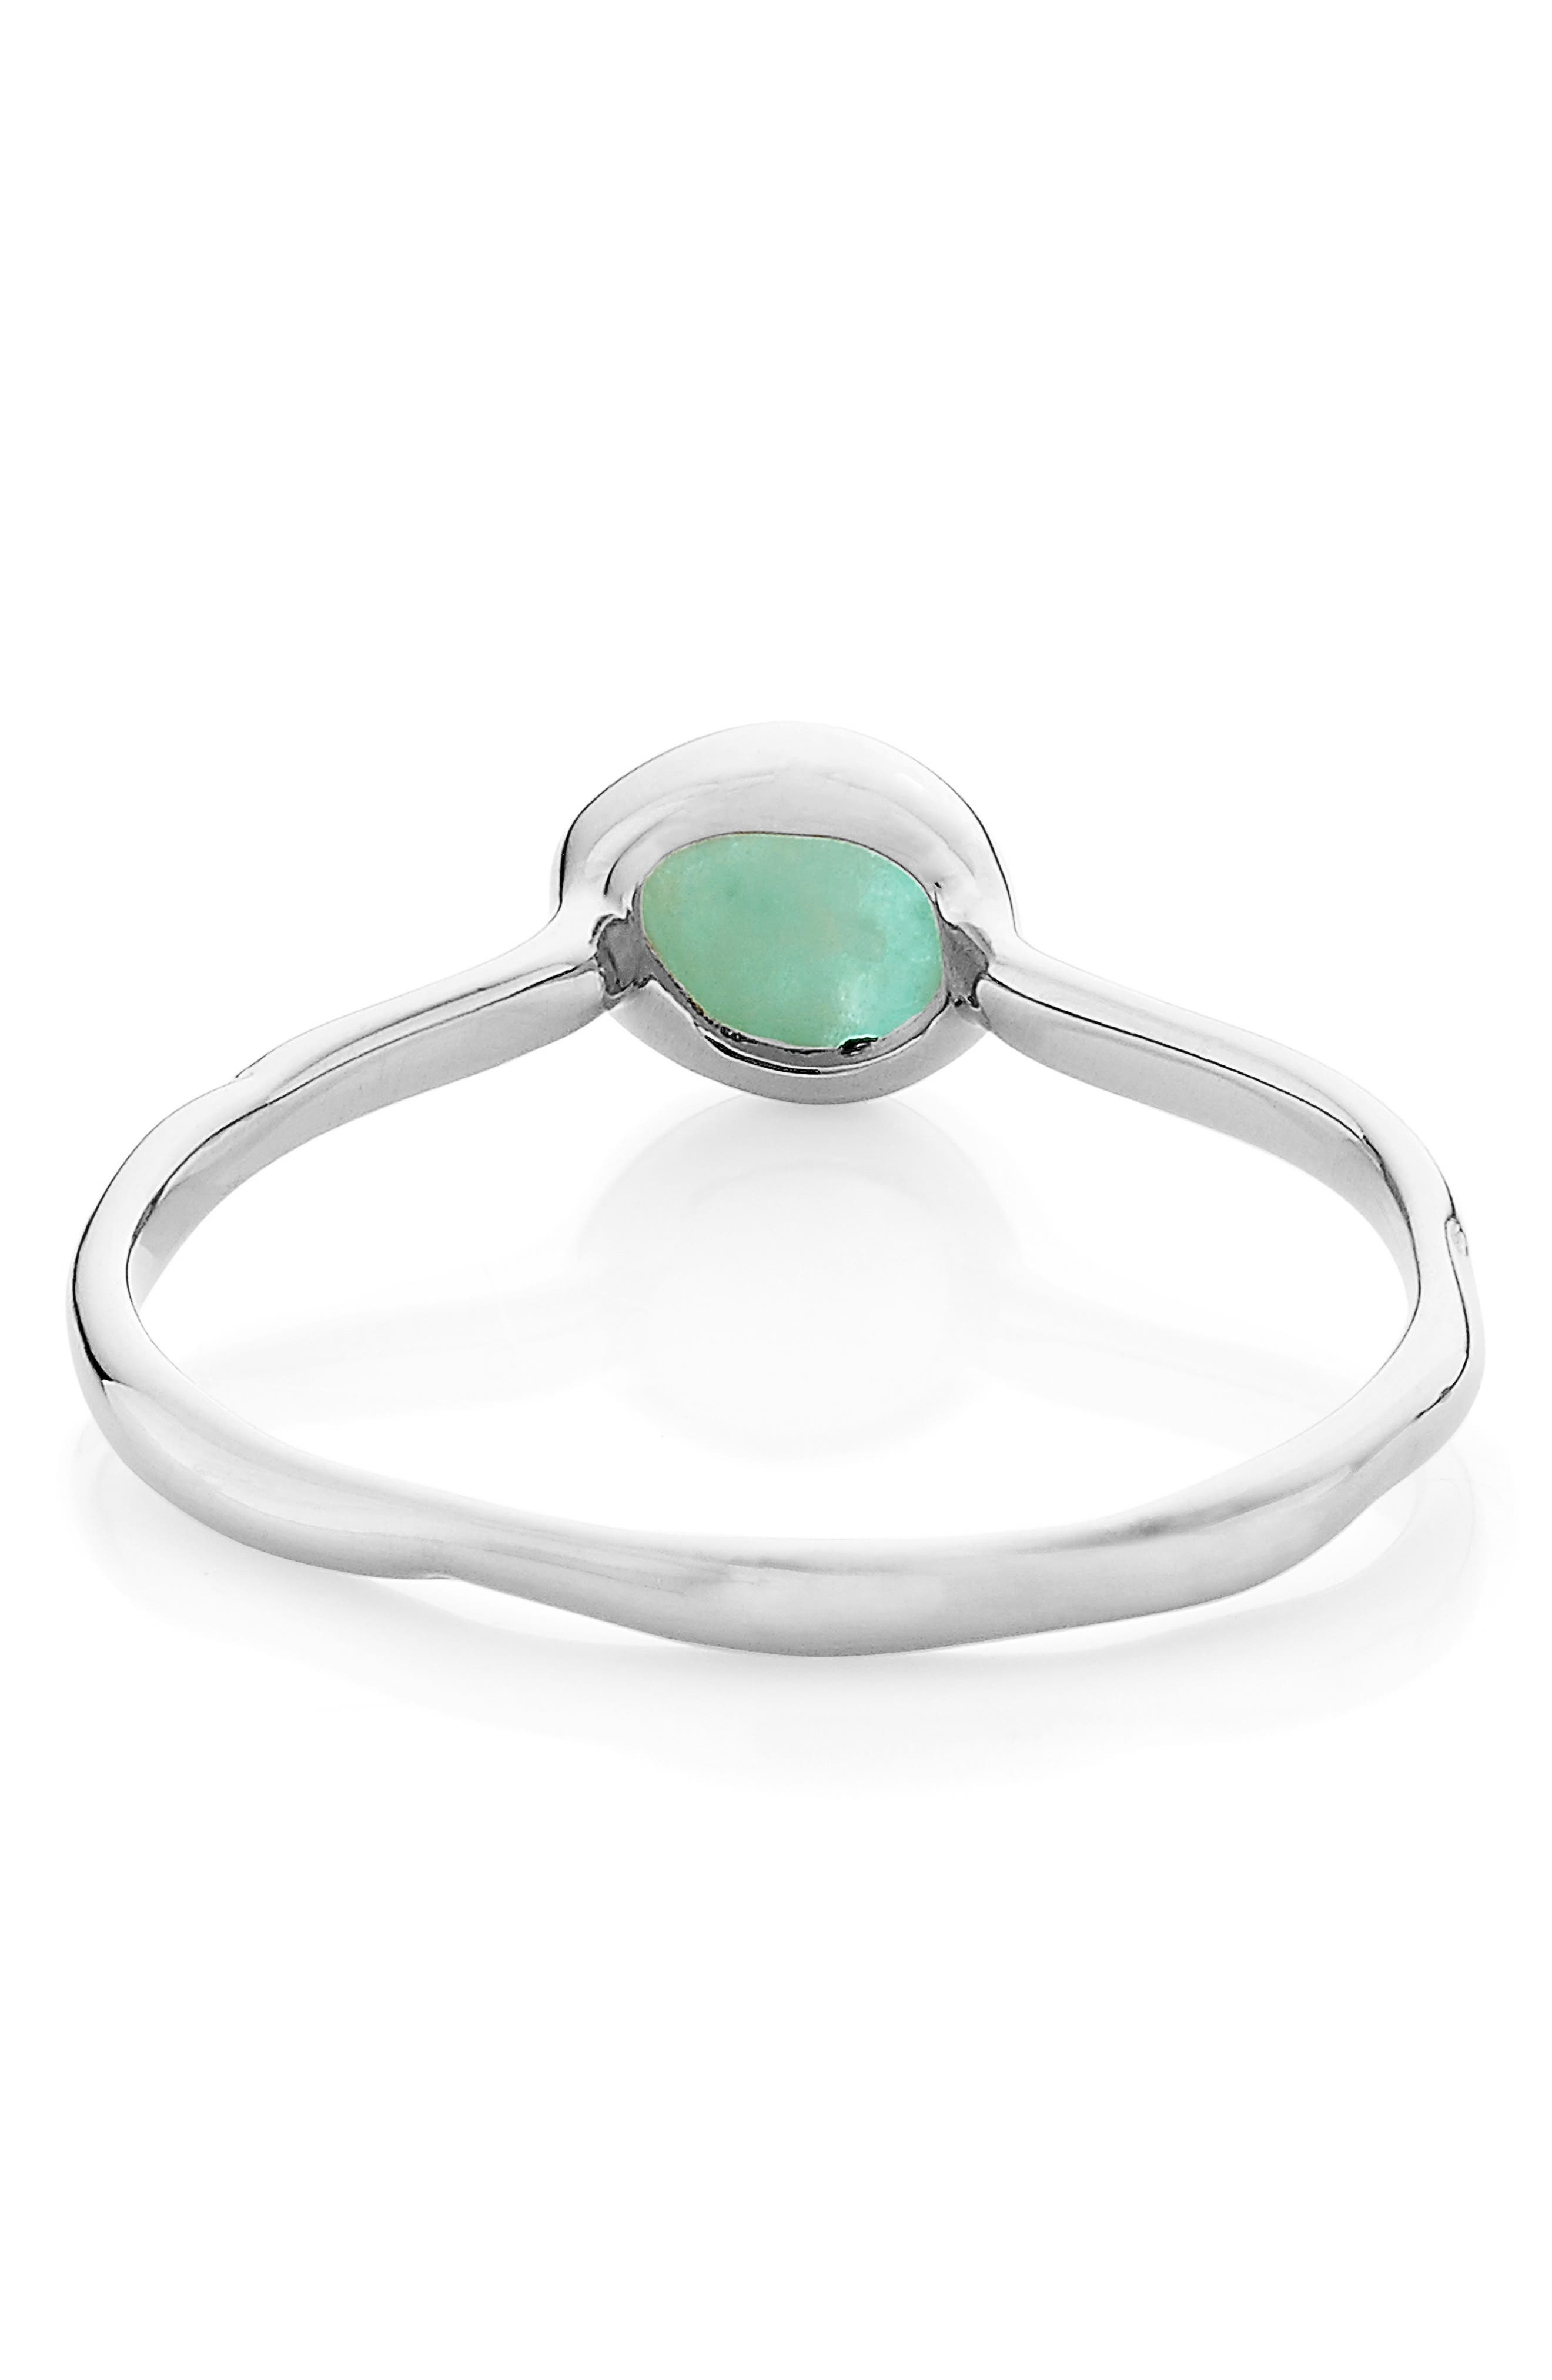 Siren Small Stacking Ring,                             Alternate thumbnail 3, color,                             SILVER/ AMAZONITE